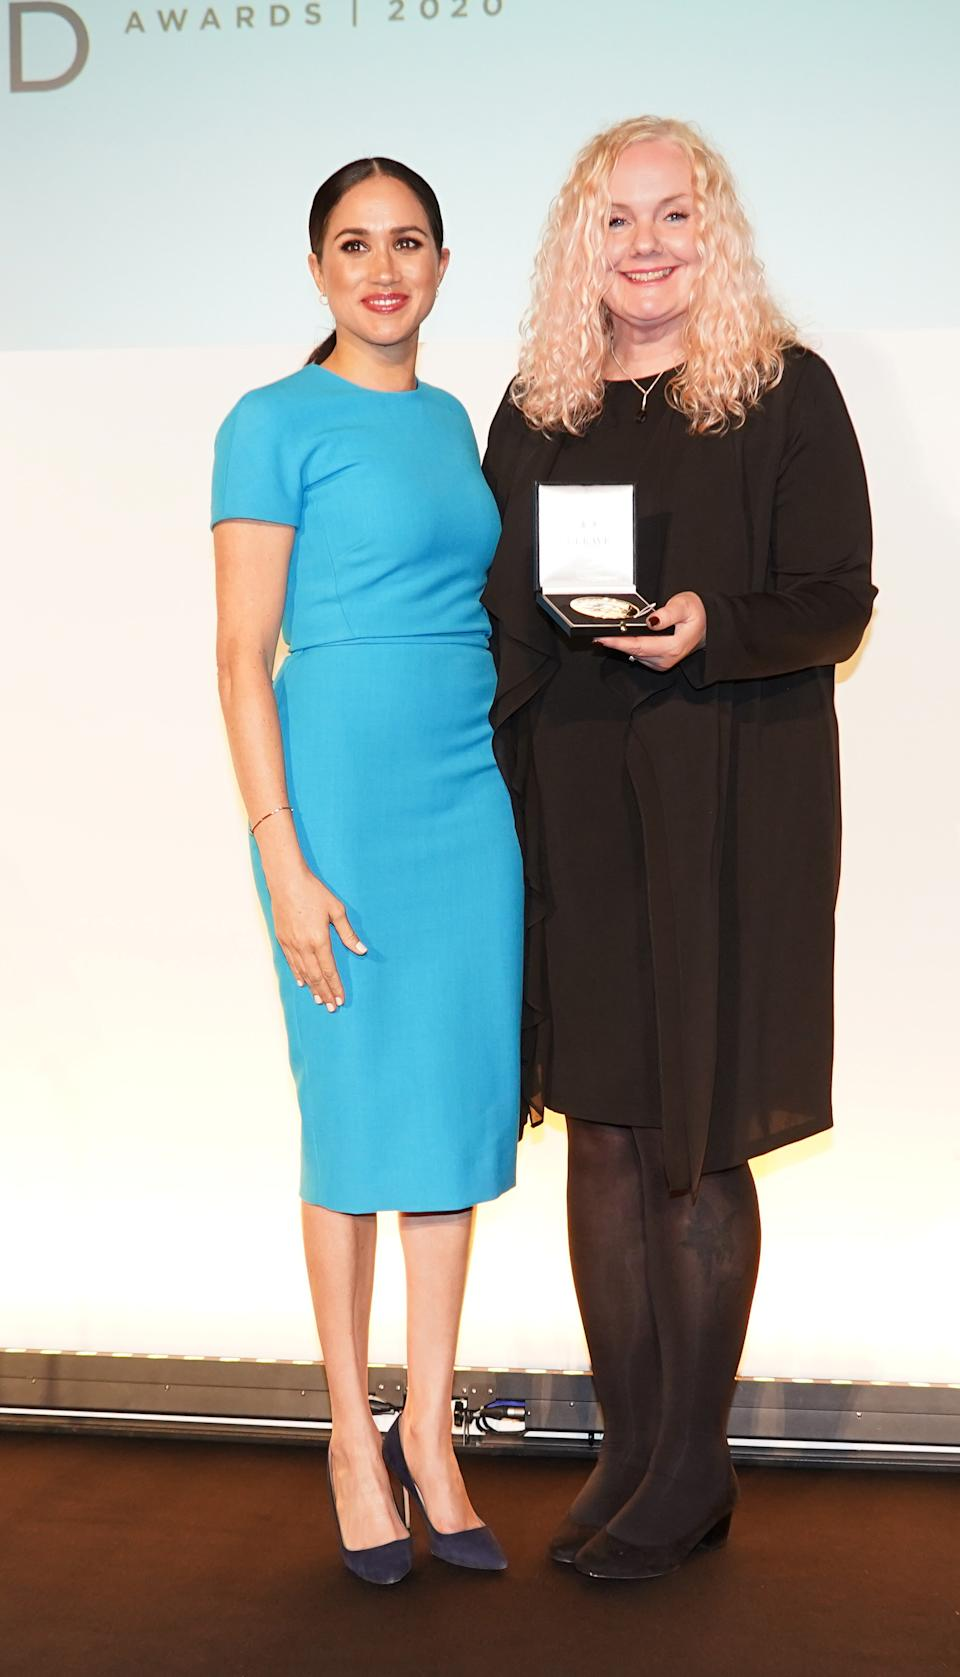 Claire Spencer, 52, (right) accepts the the Celebrating Excellence award on behalf of her husband and former Royal Marine Lee Spencer from the Duchess of Sussex (left) at the Endeavour Fund Awards at Mansion House in London.